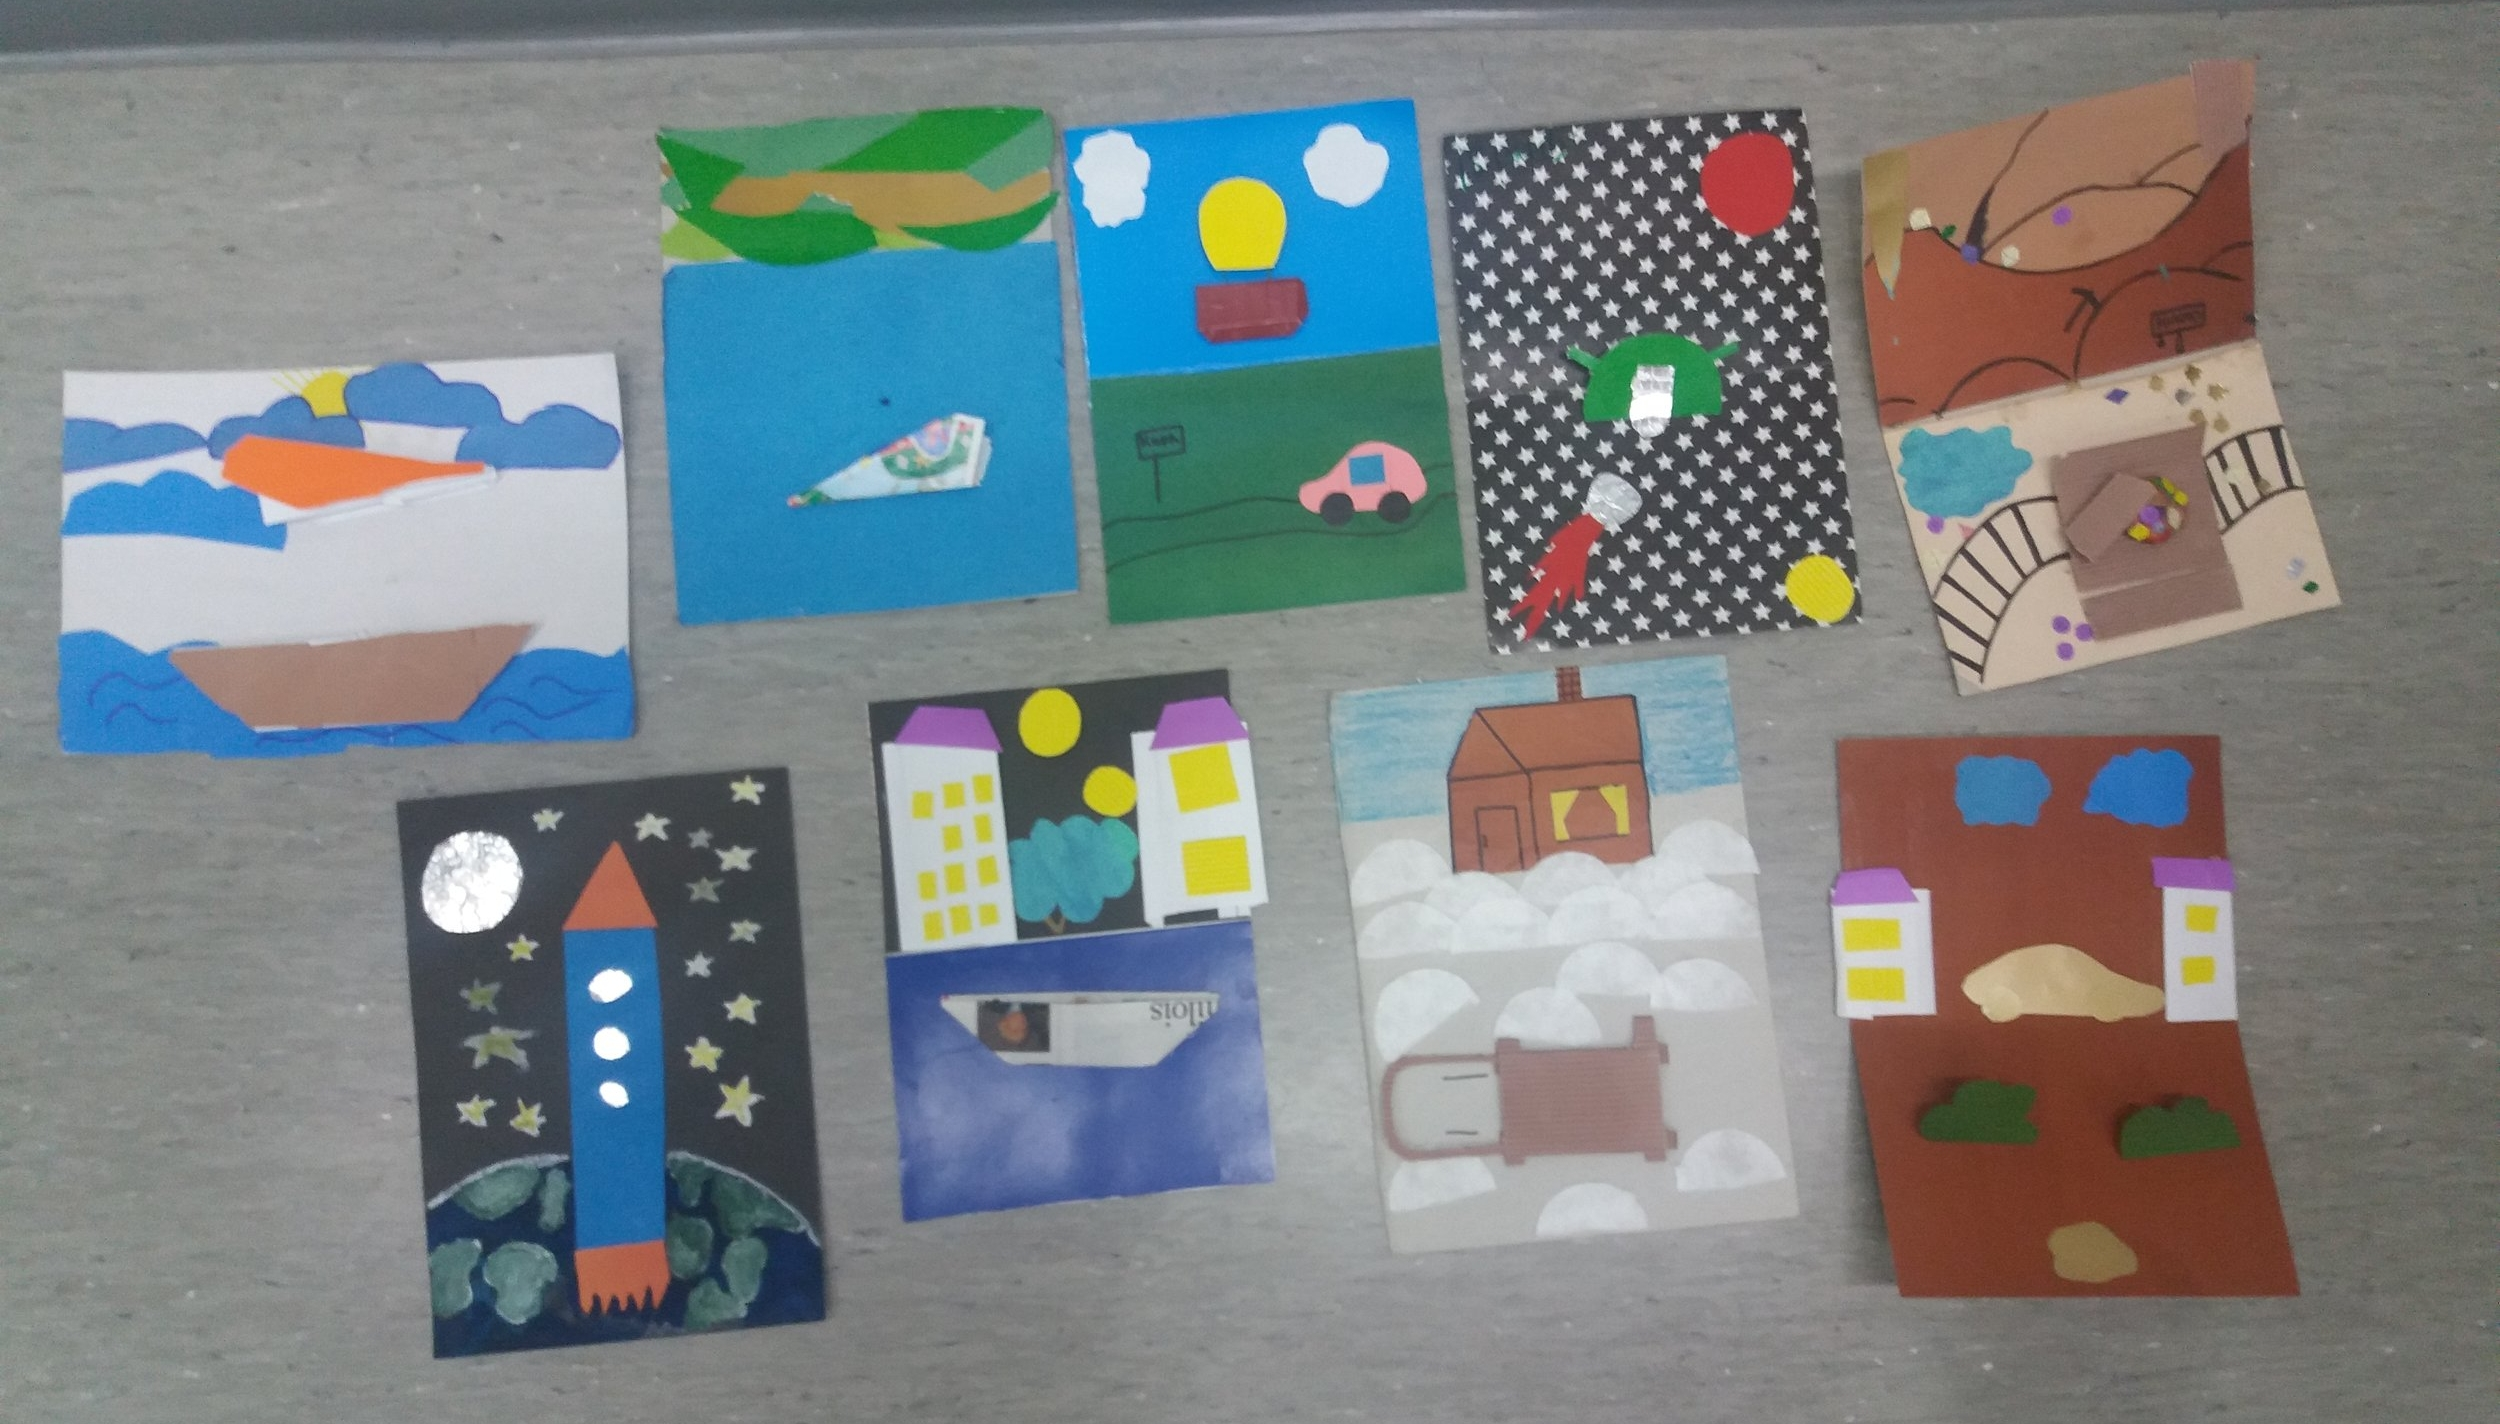 Artworks from the artists at Кепская школа им. Ортье Степанова (Kepa School) in Karelia, Russia